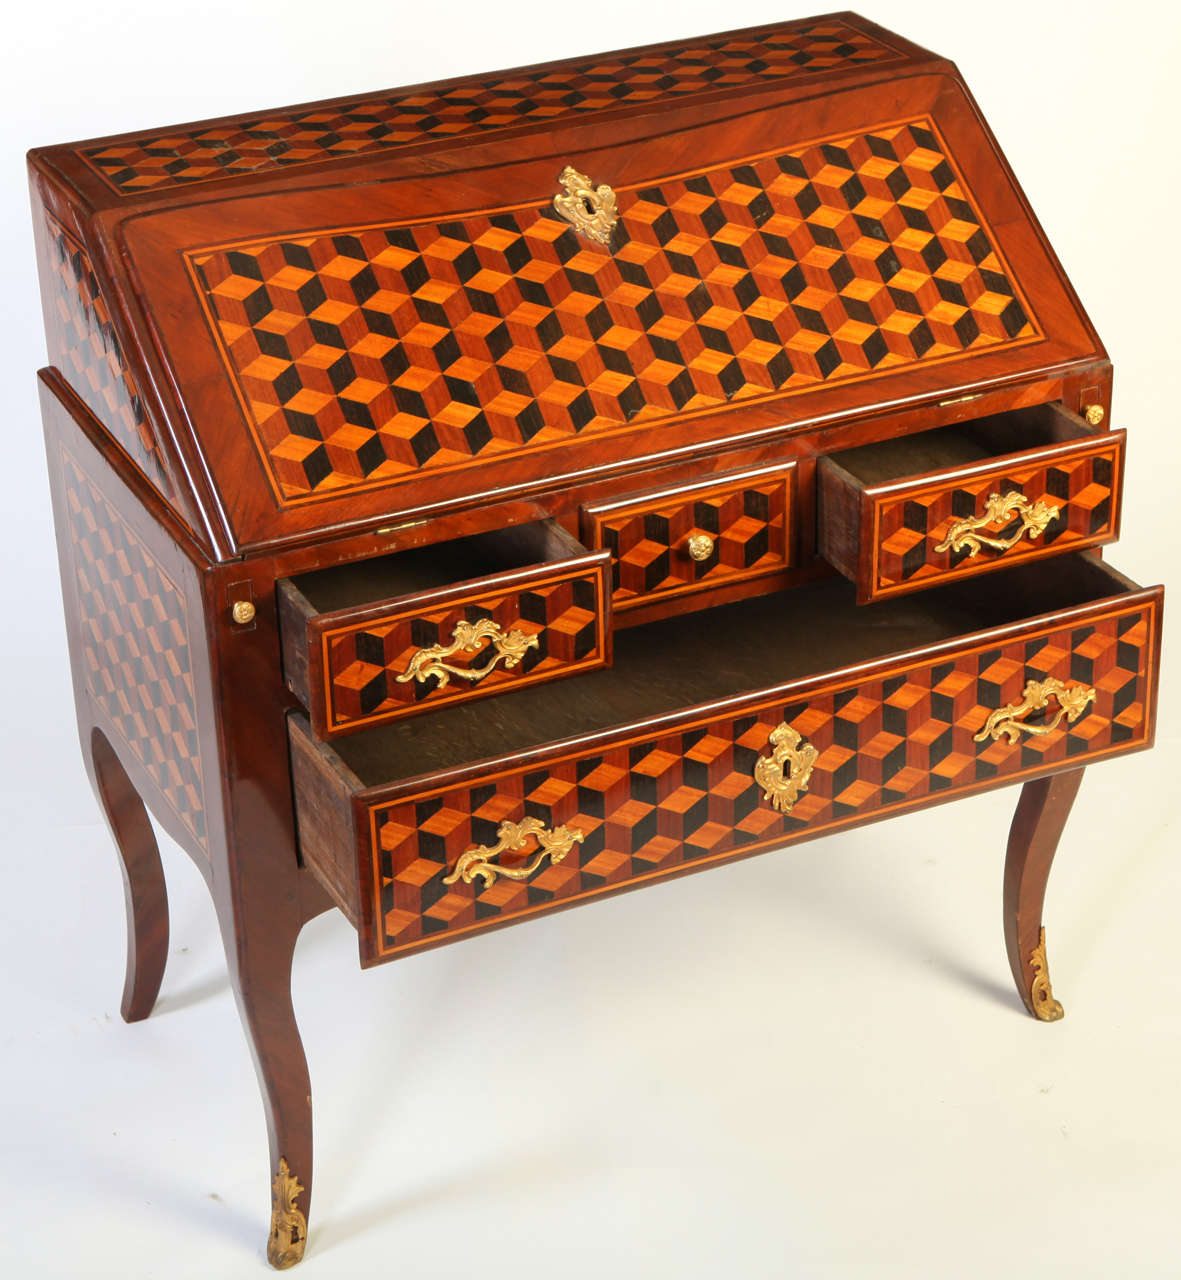 A french marqueterie bureau de dame for sale at 1stdibs for Bureau french